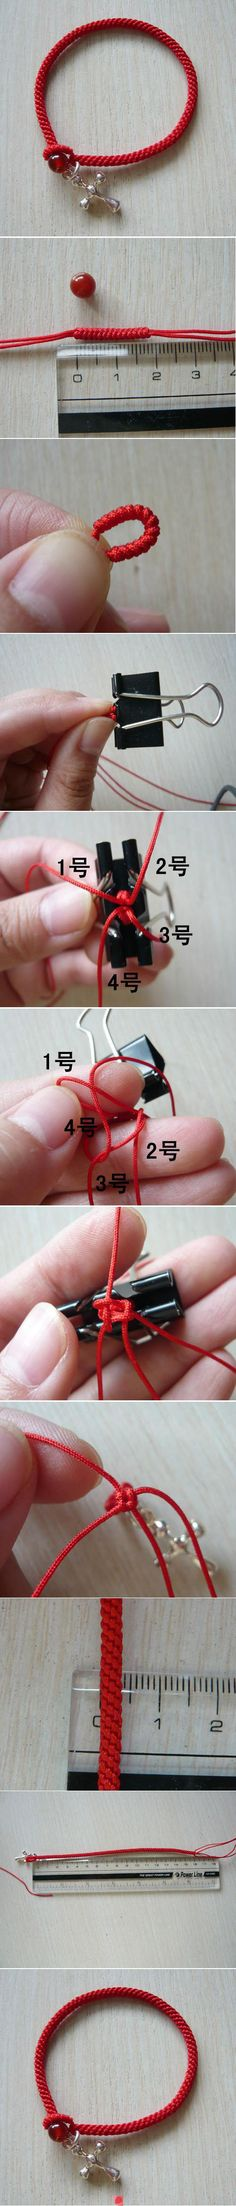 Can use my kumihimo disk to make this. Cute!